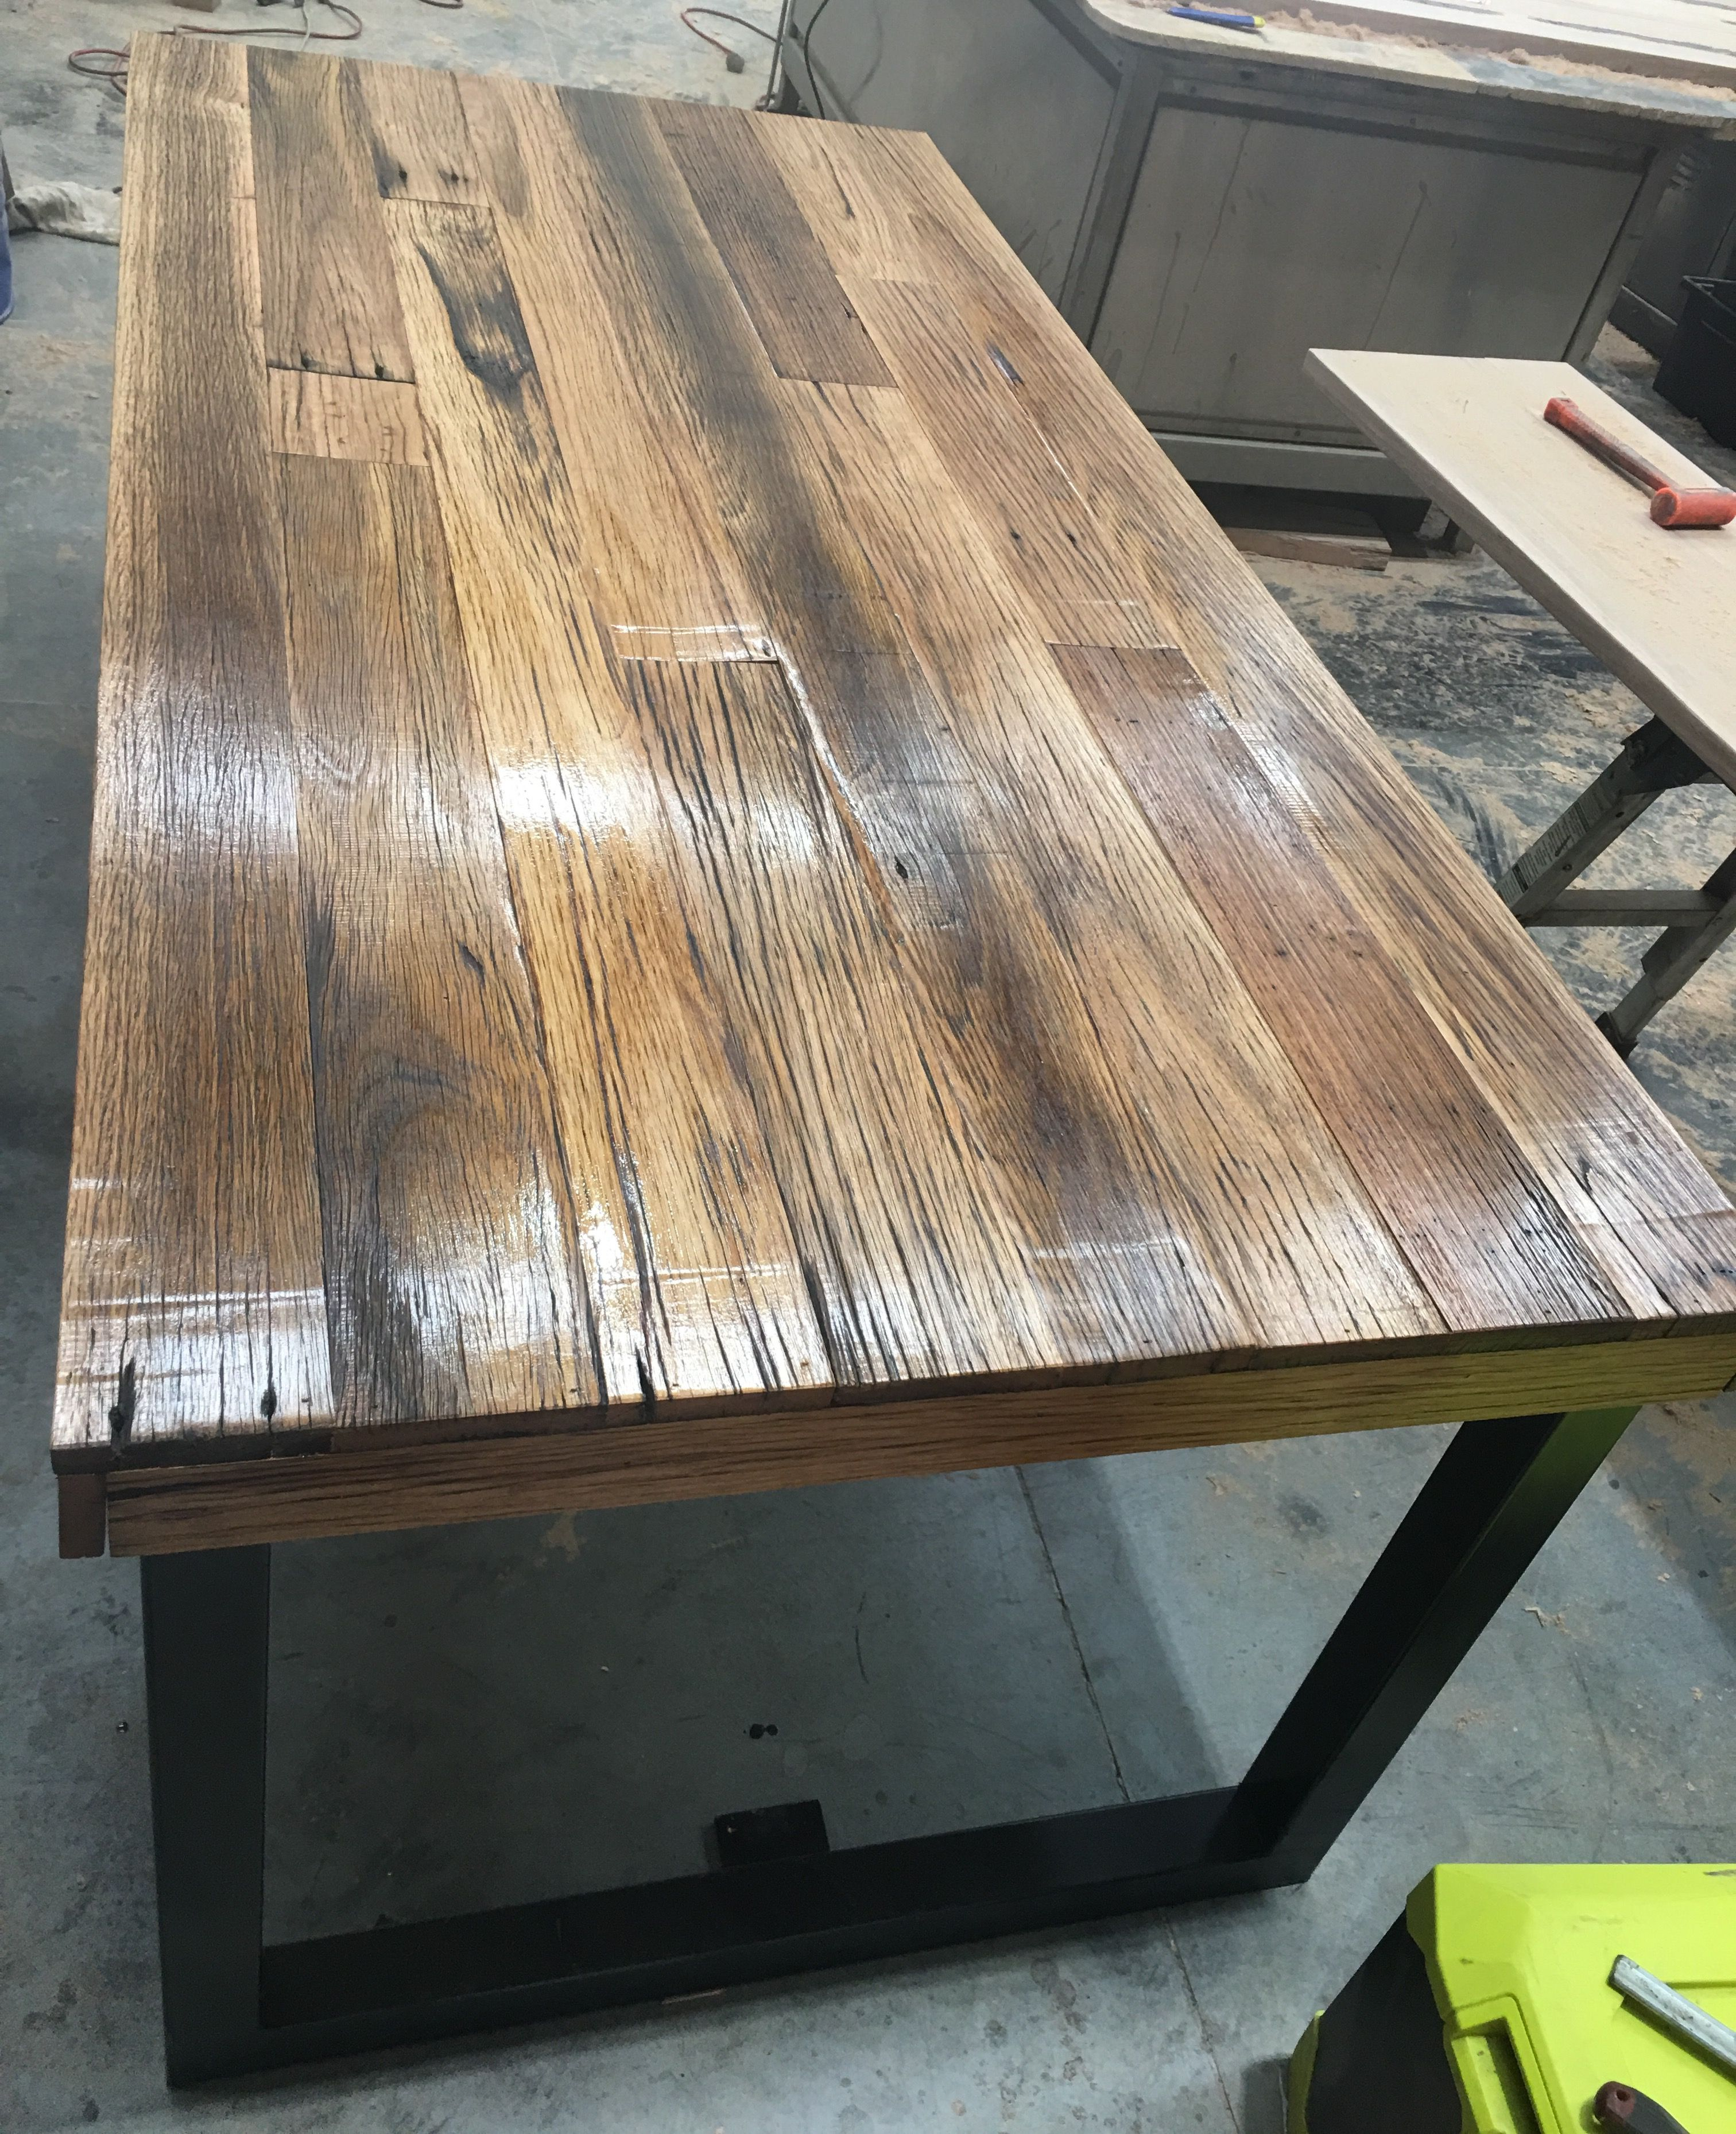 Recycled Timber Palings Industrial Dining Table With Black Metal